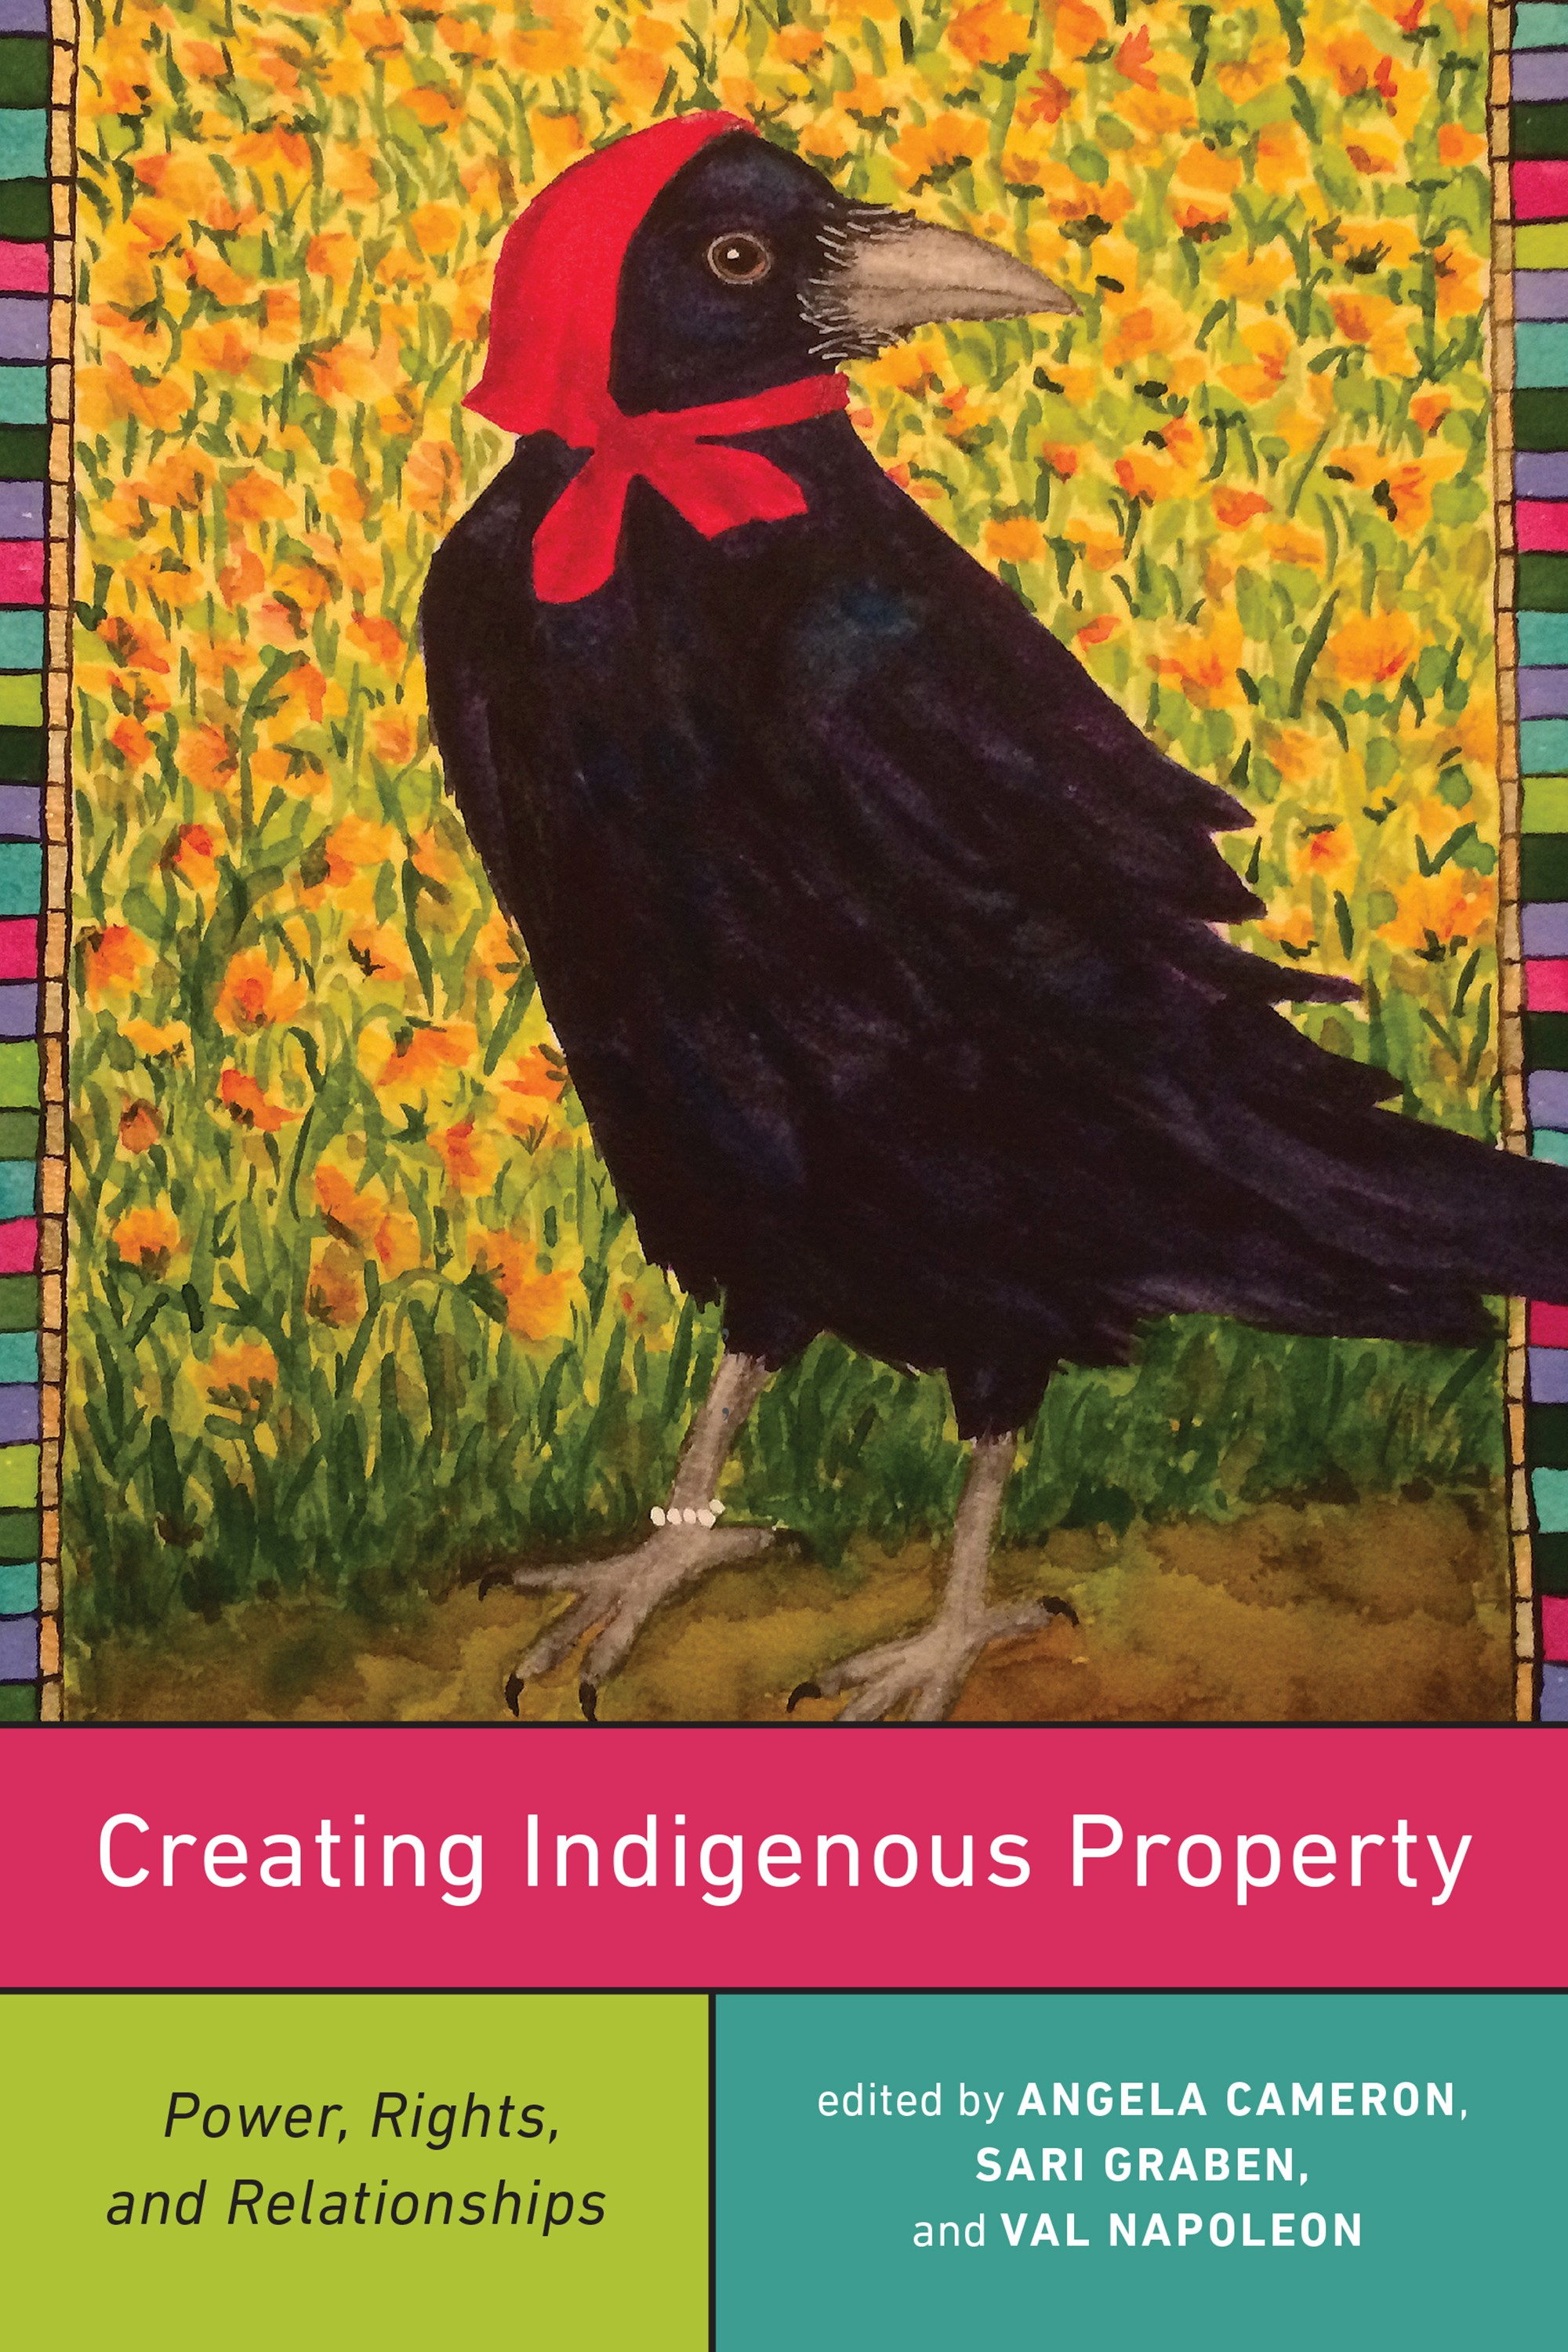 BOOK | Creating Indigenous Property: Power, Rights, and Relationships (2020)